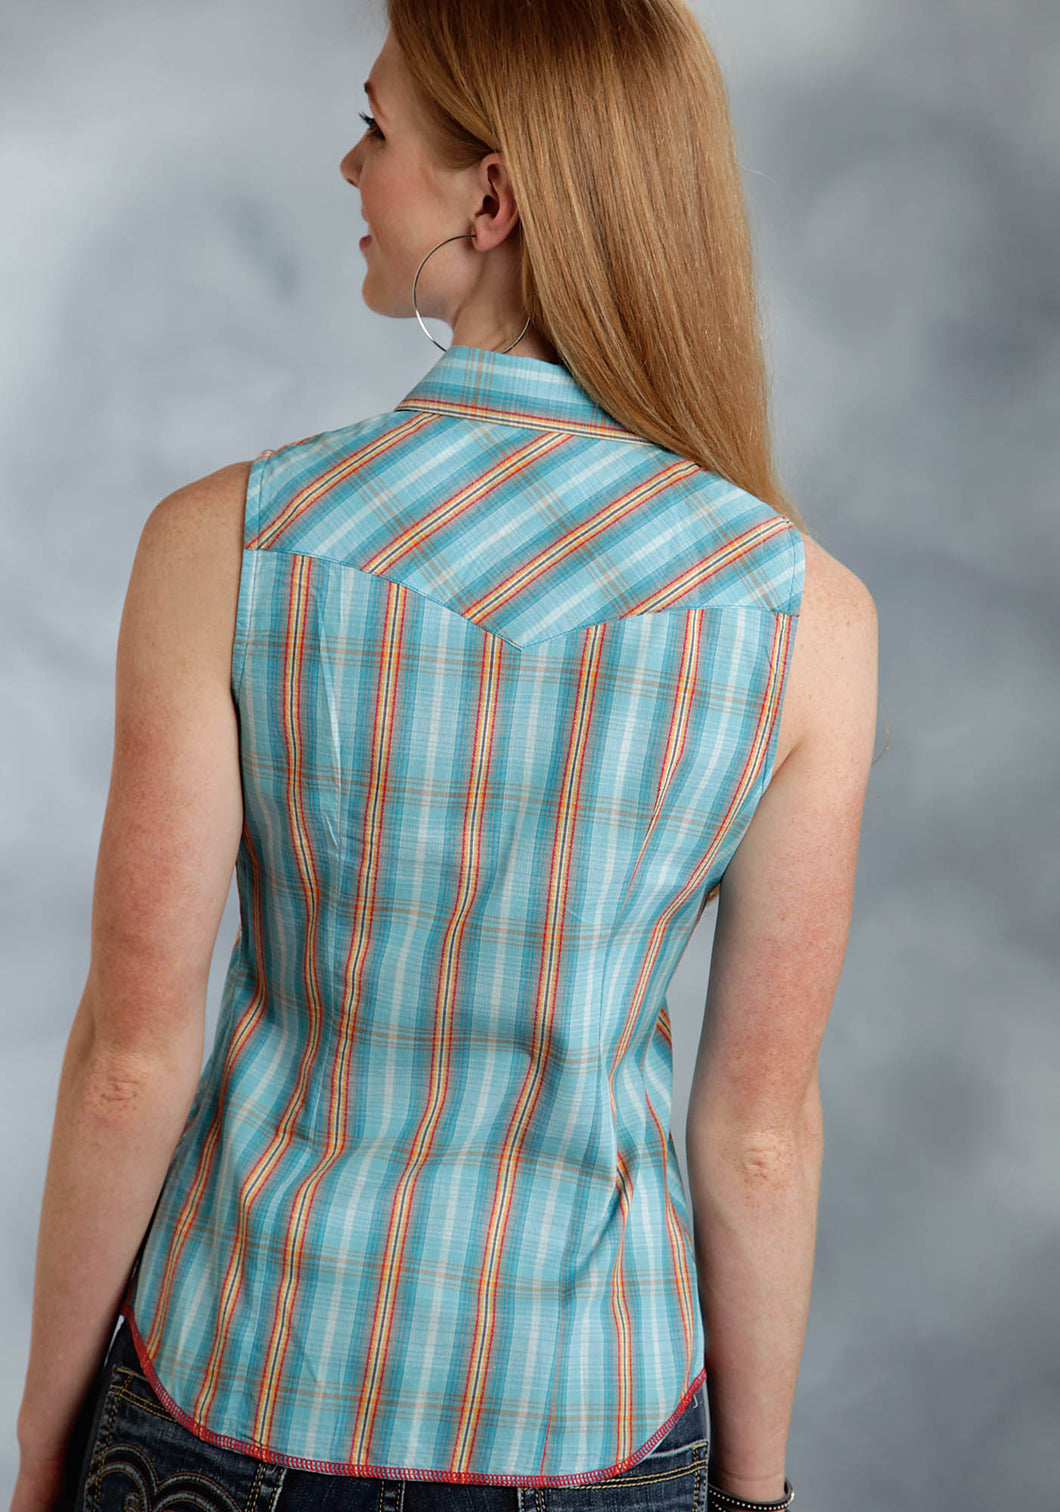 Performance Collection- Spring I Westm Ladies Sleeveless Shirt 0190 Ombre Dobby Plaid